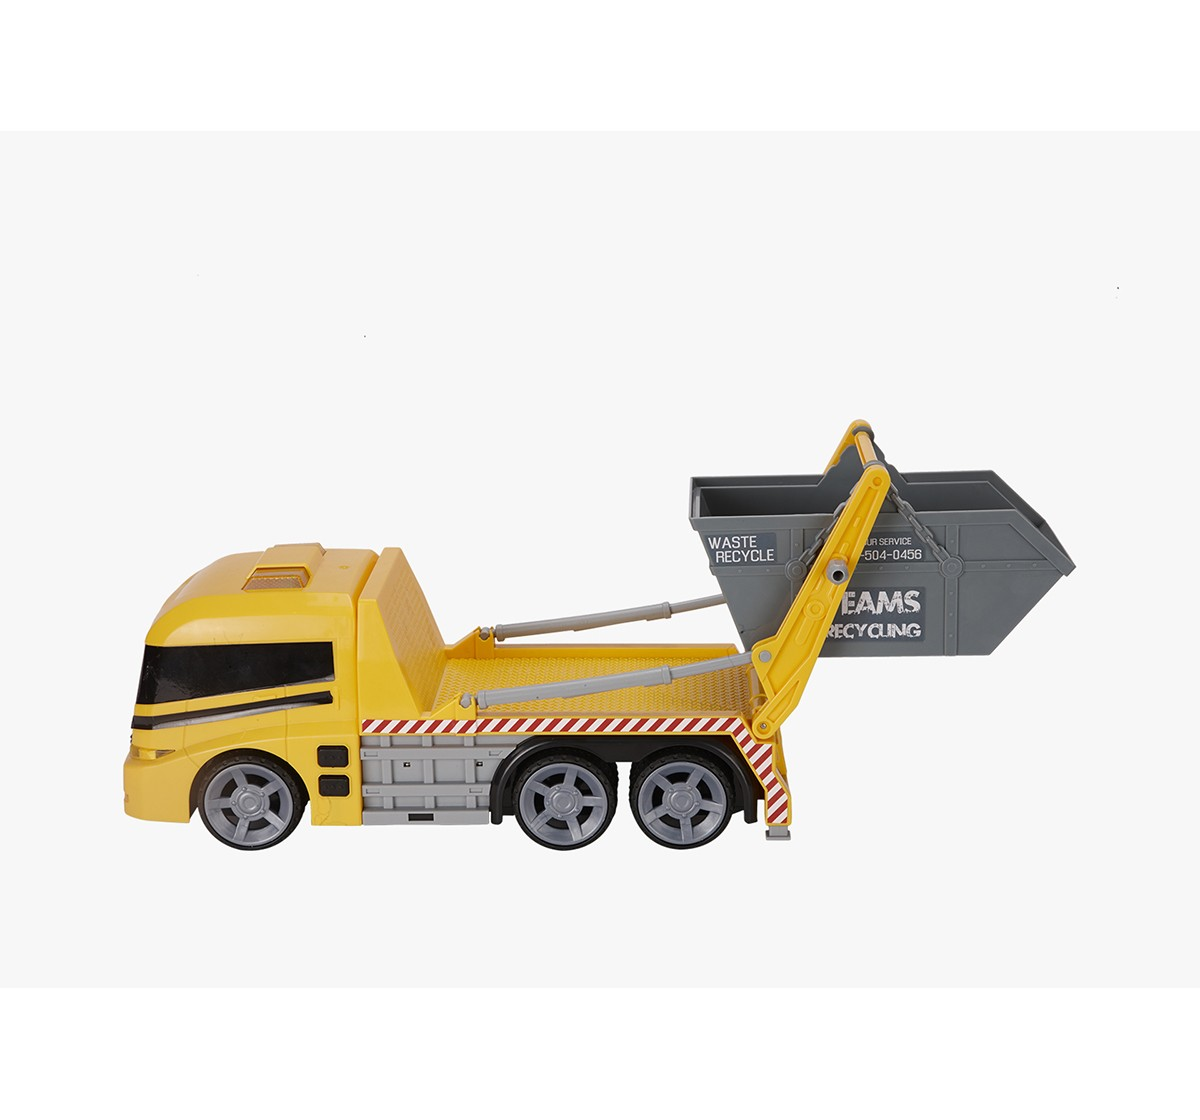 Hti Teamsterz Skip Lorry Truck With Lights And Sounds Skip Lorry Truck Toy For Toddlers And Young Kids T Vehicles for Boys age 3Y+ (Yellow)